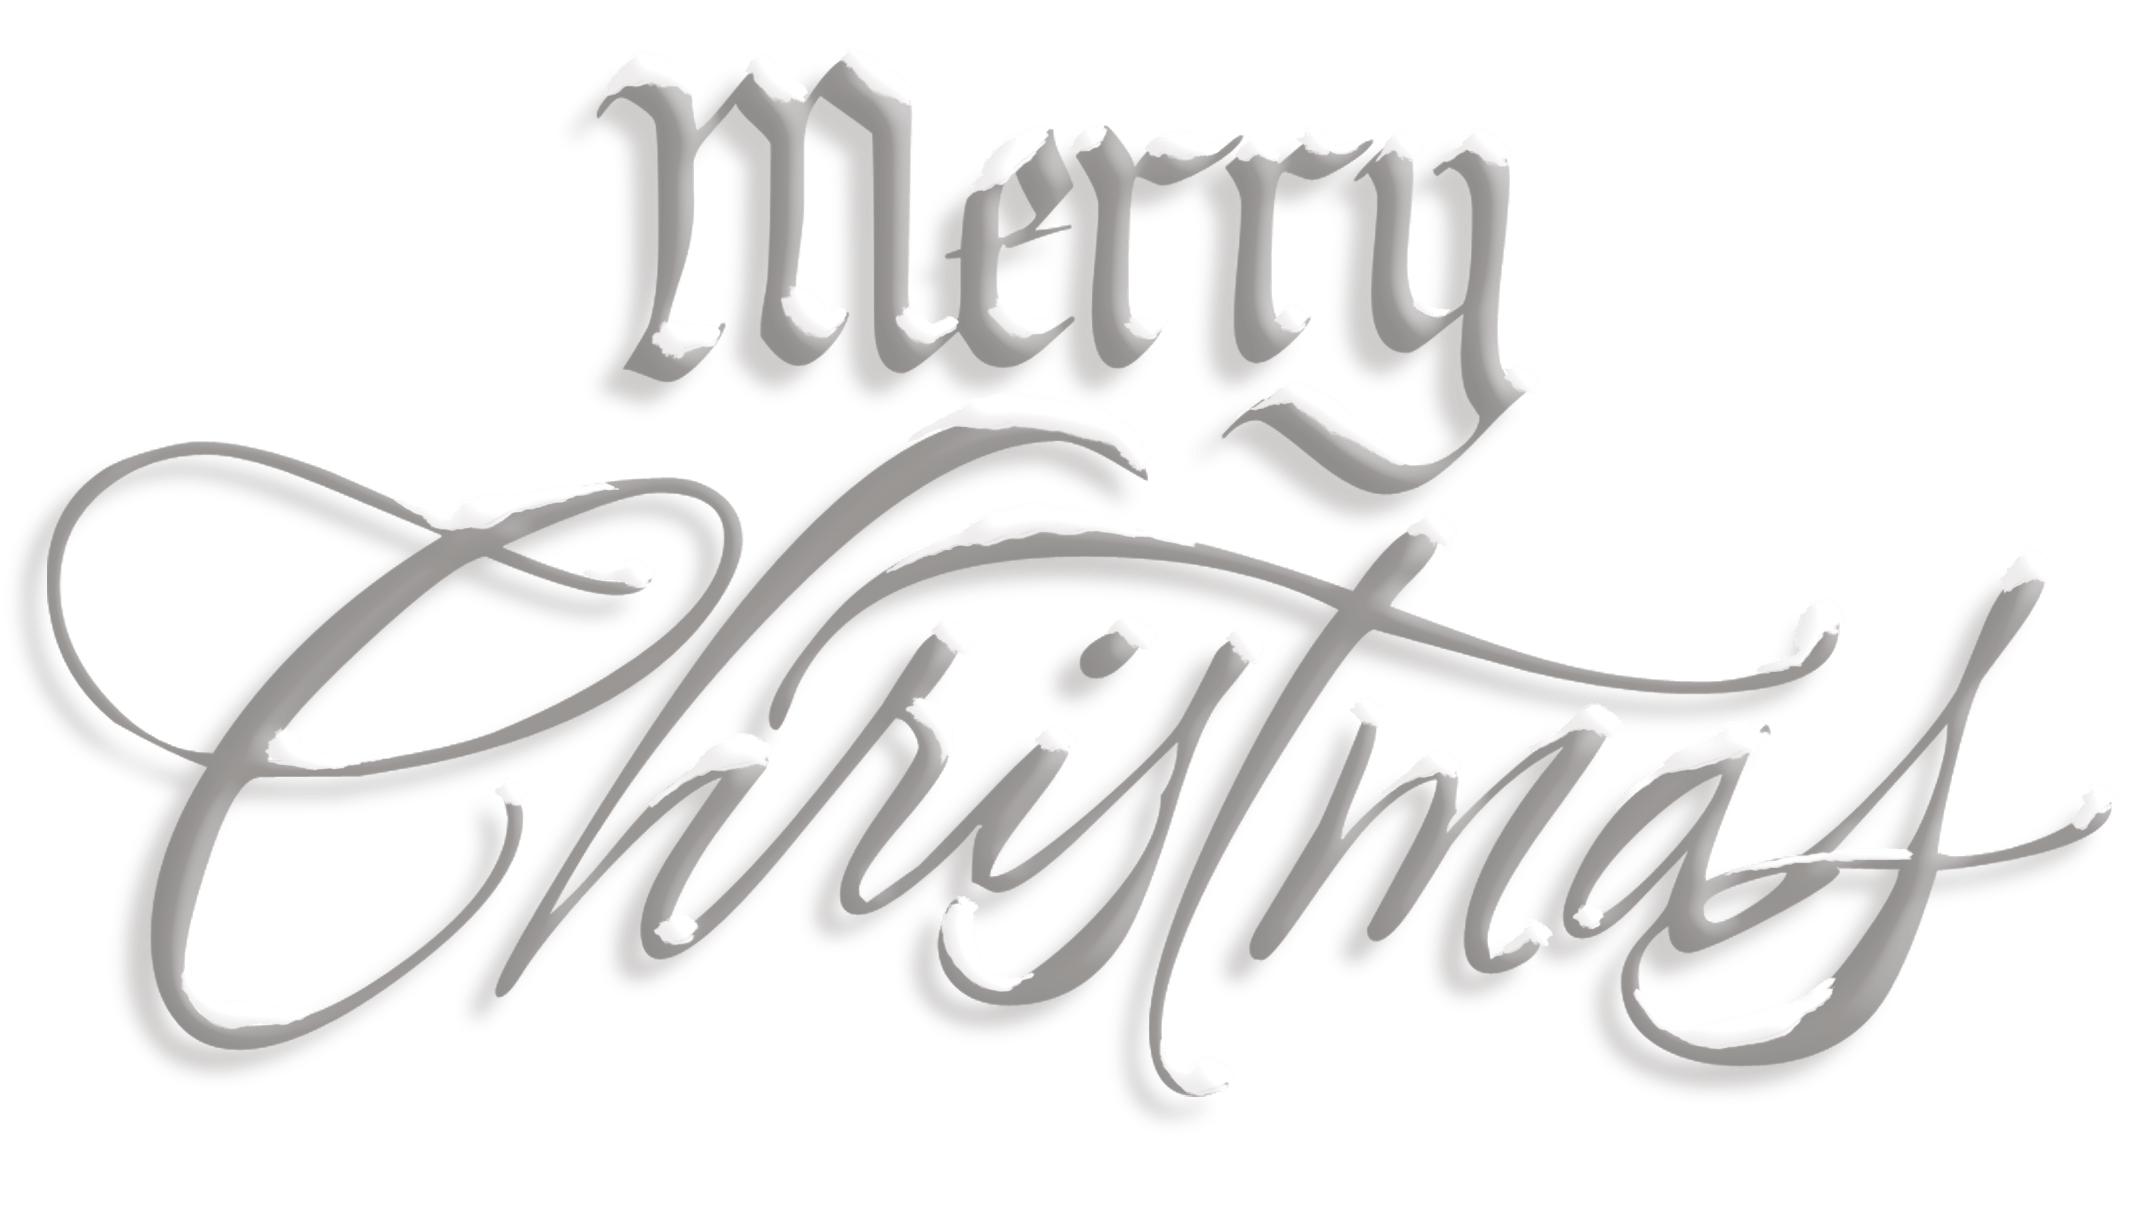 Merry snow text transparent. Clipart christmas silver